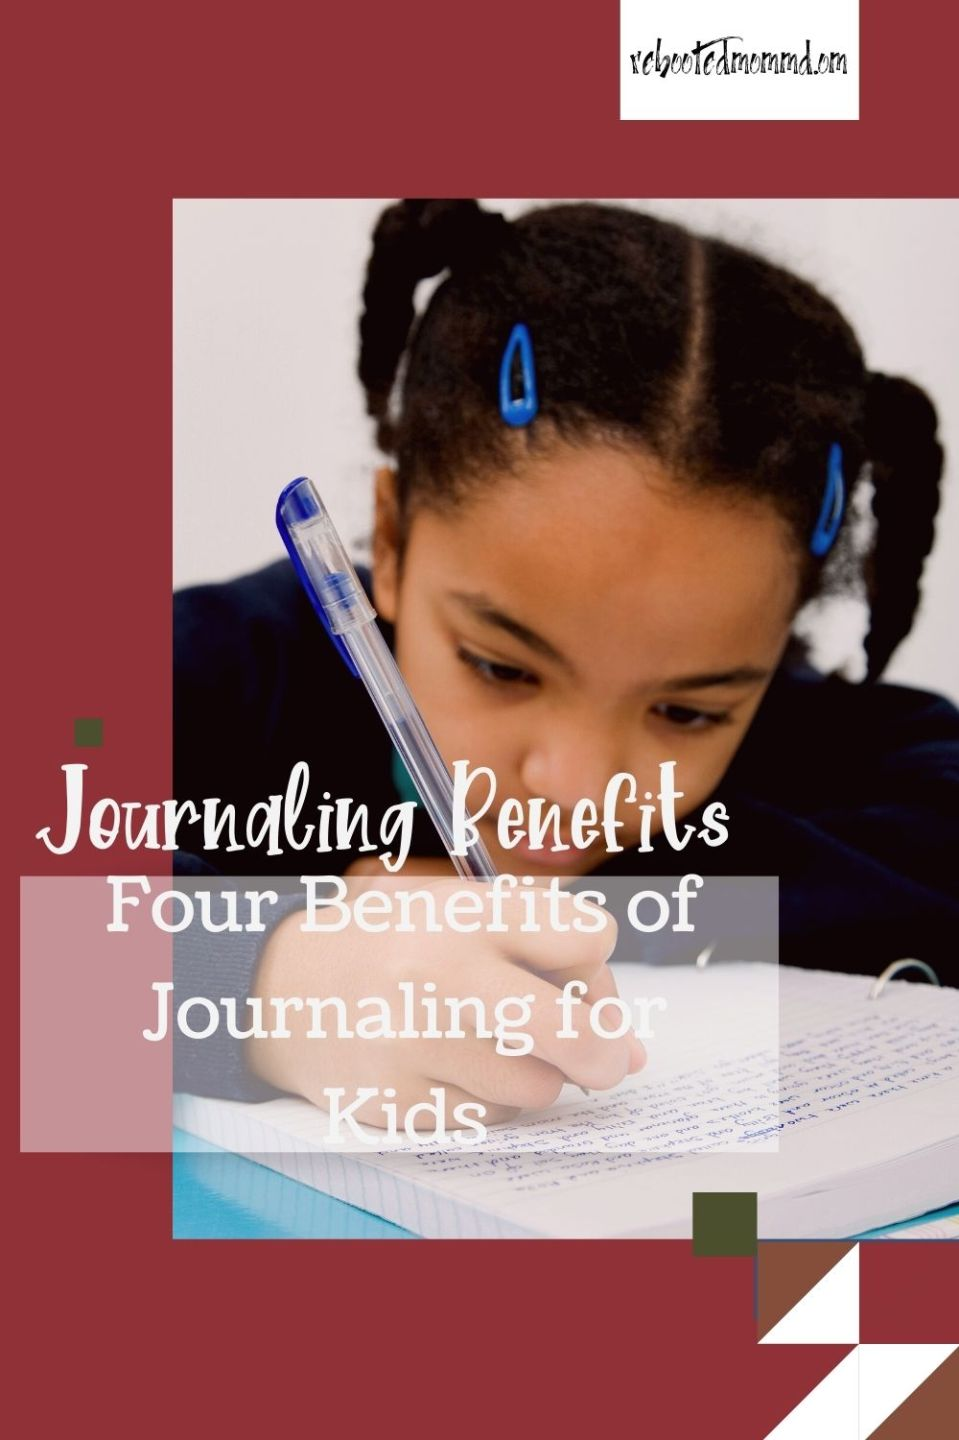 Four Benefits of Journaling for Kids